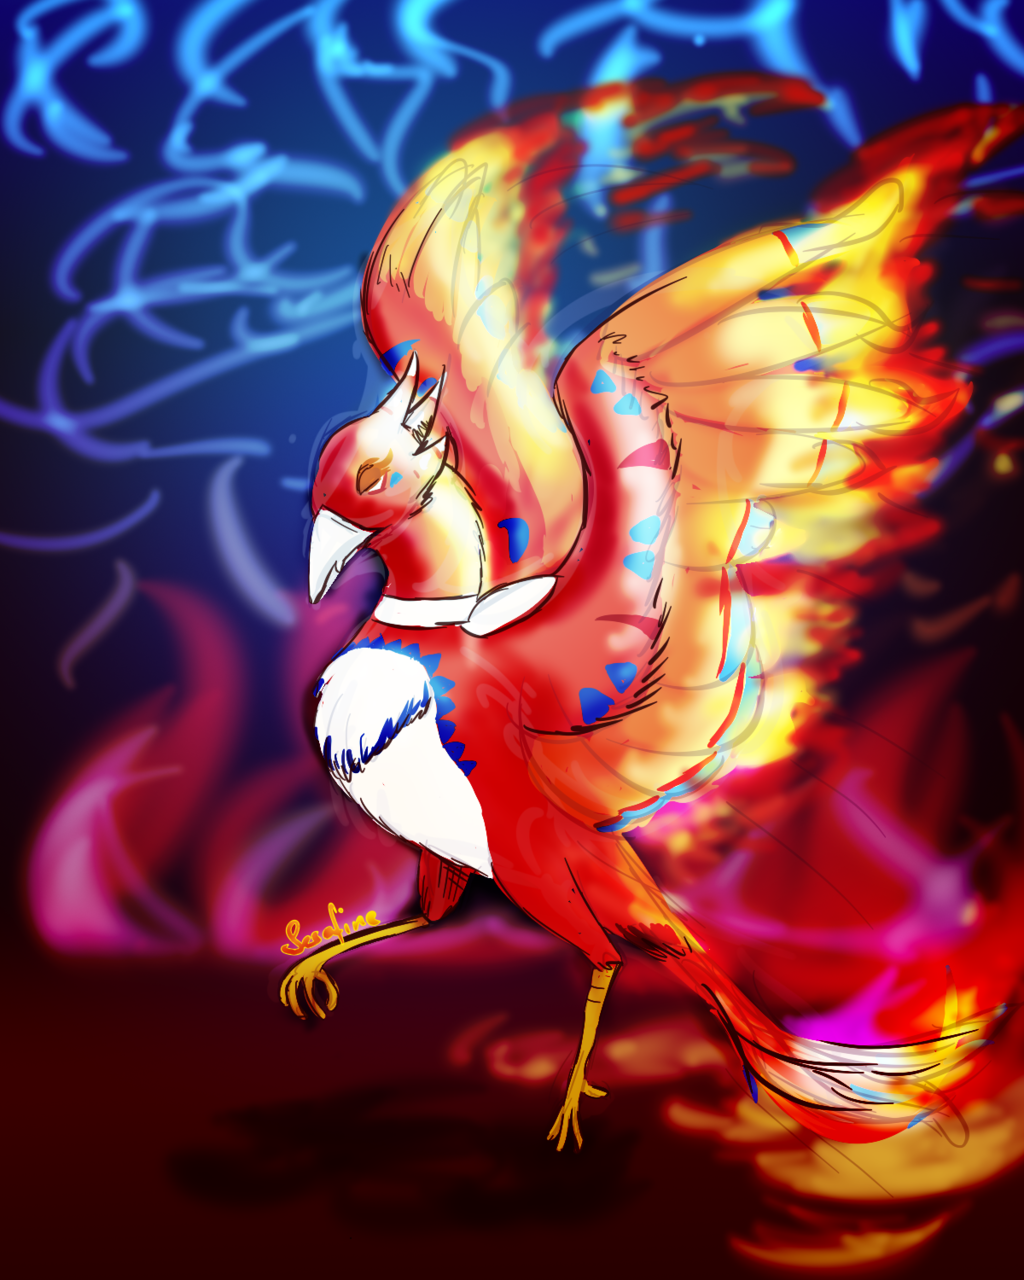 Most recent image: fierce firebird